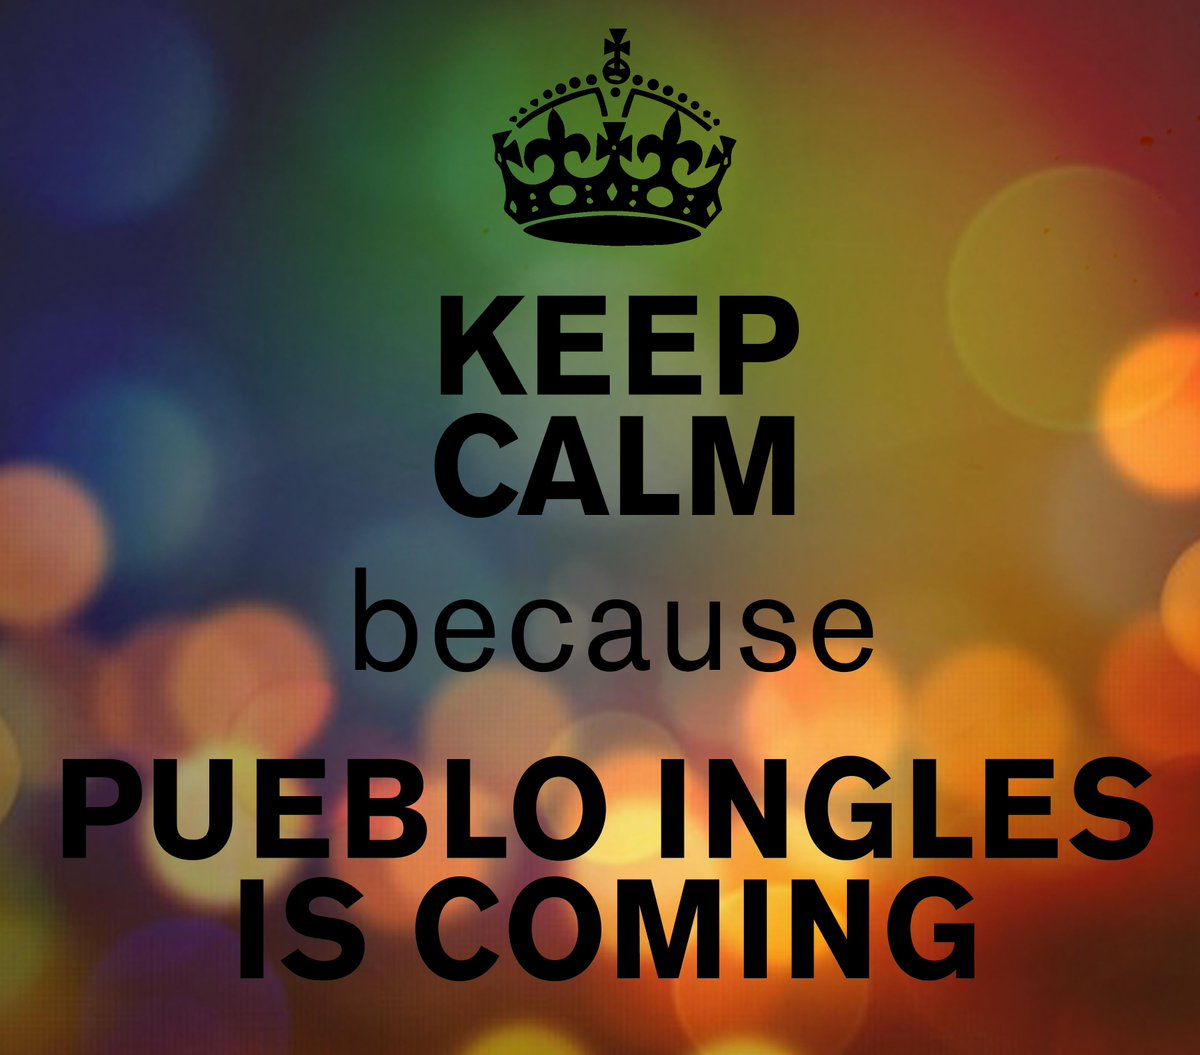 Are you ready? #puebloingles is coming!! #aprendeingles #summerinenglish http://t.co/y8oUwijHou